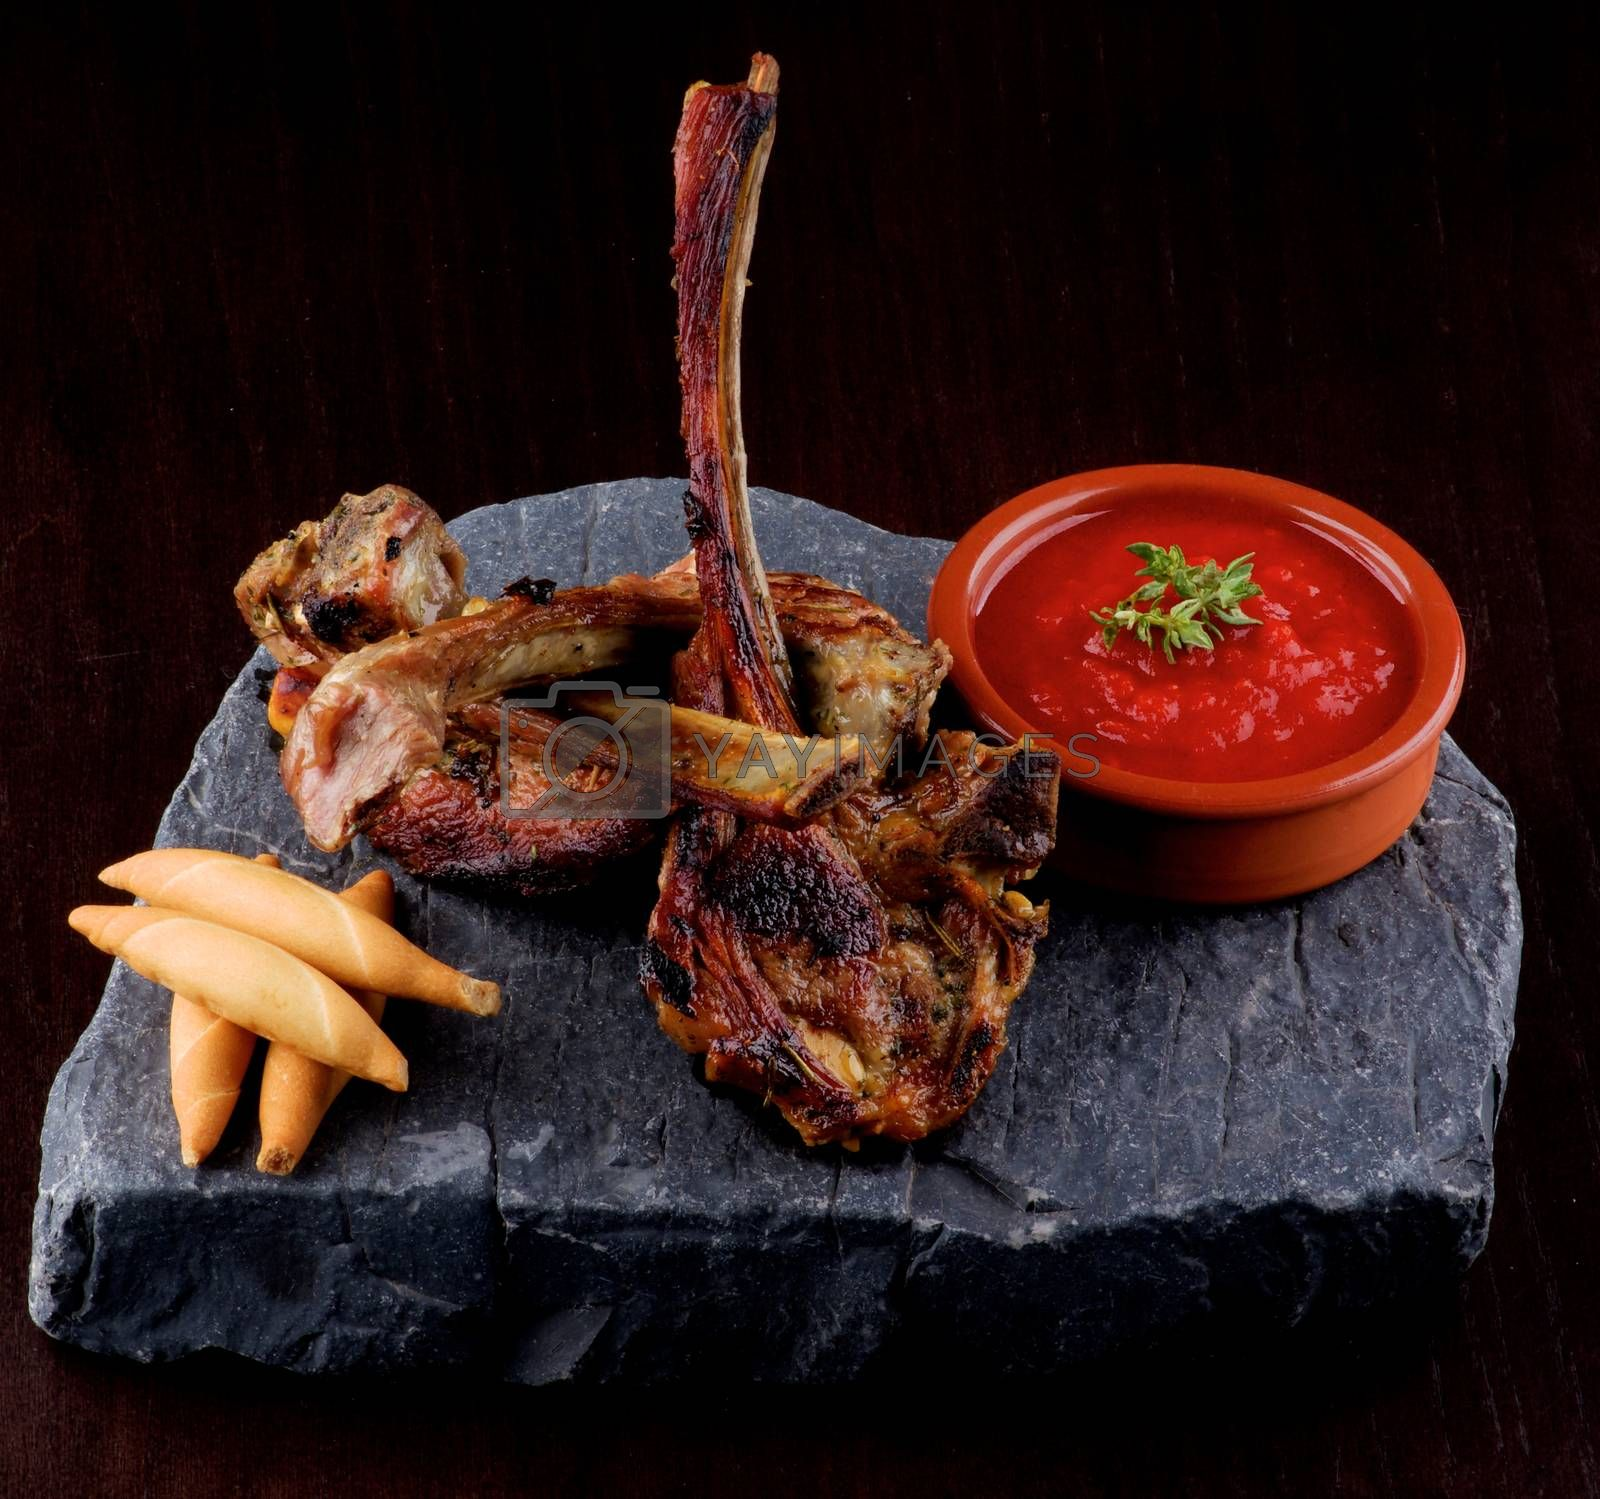 Delicious Roasted Lamb Ribs with Bread Sticks and Tomato Sauce on Stone Plate closeup on Dark Wooden background